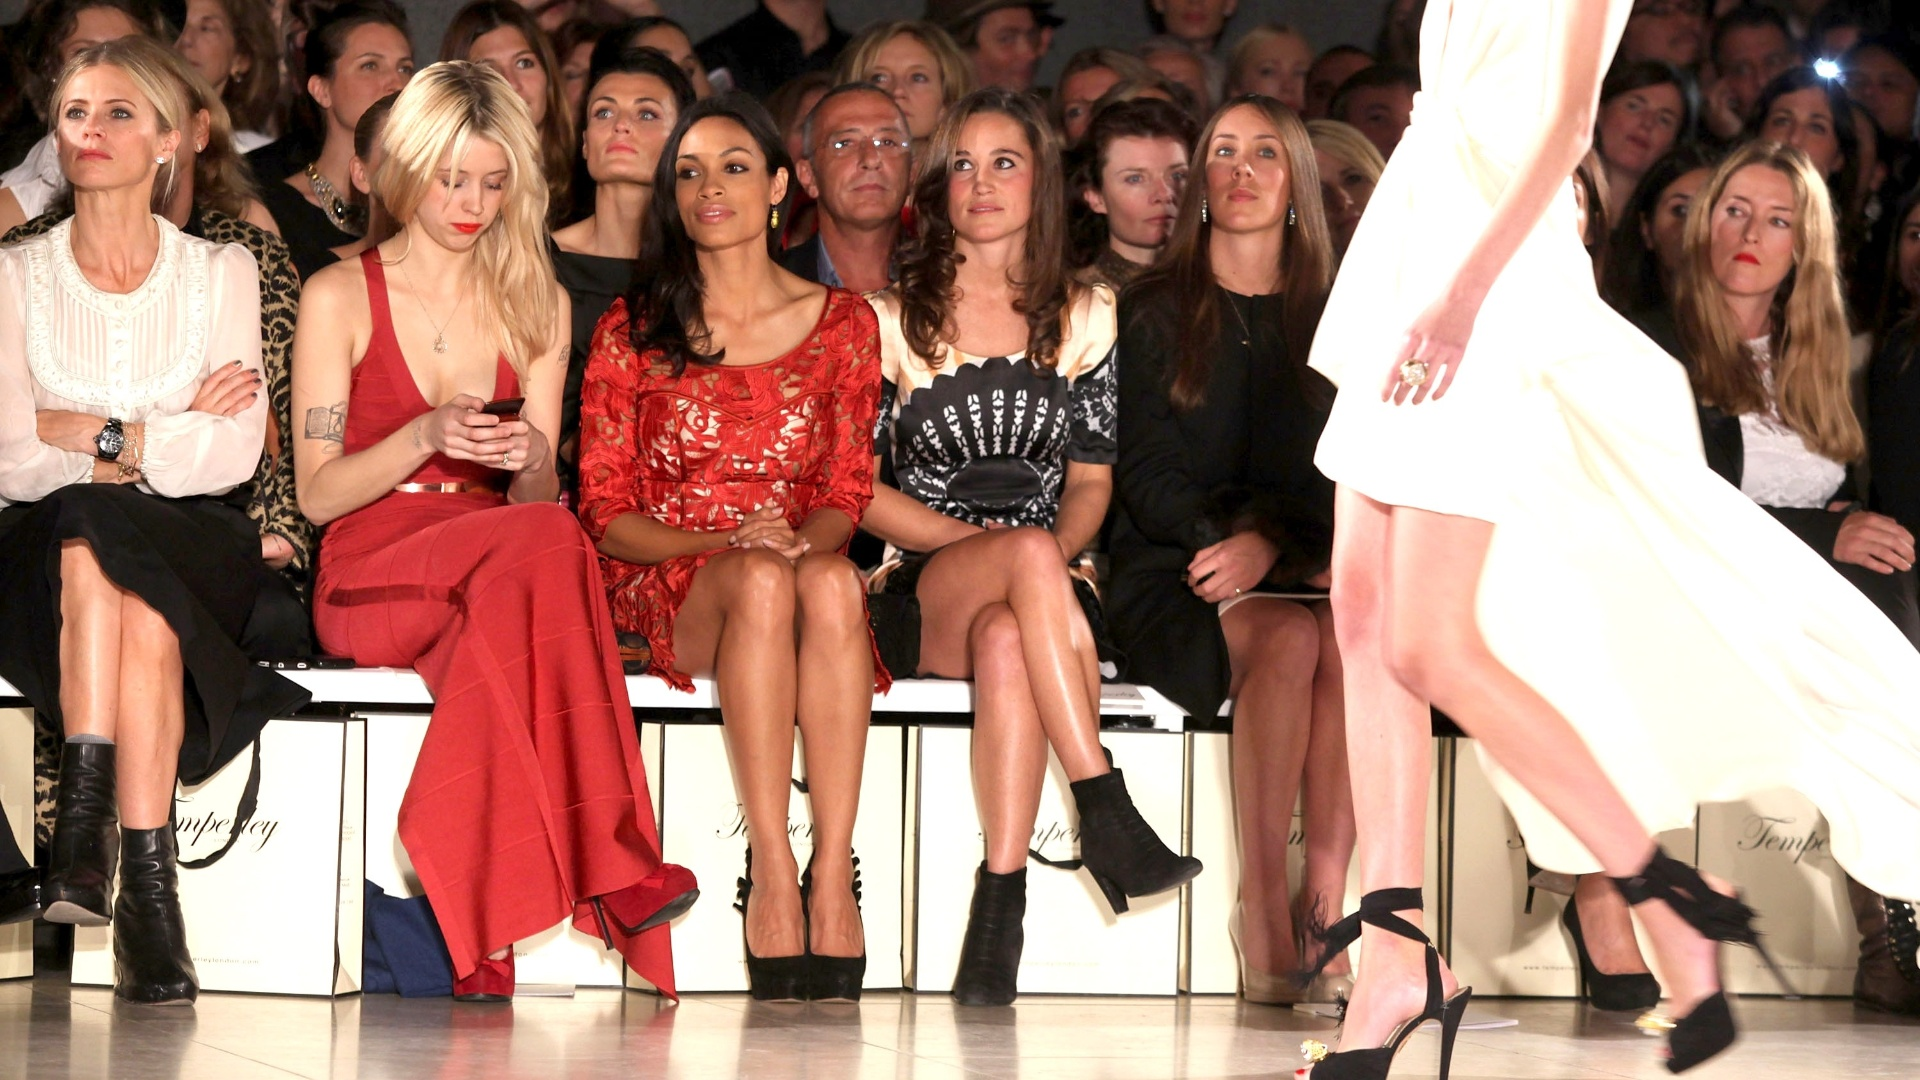 Pippa Middleton, Peaches Geldof e a atriz Rosario Dawson assistem ao desfile da Temperley na London Fashion Week (19/09/2011)